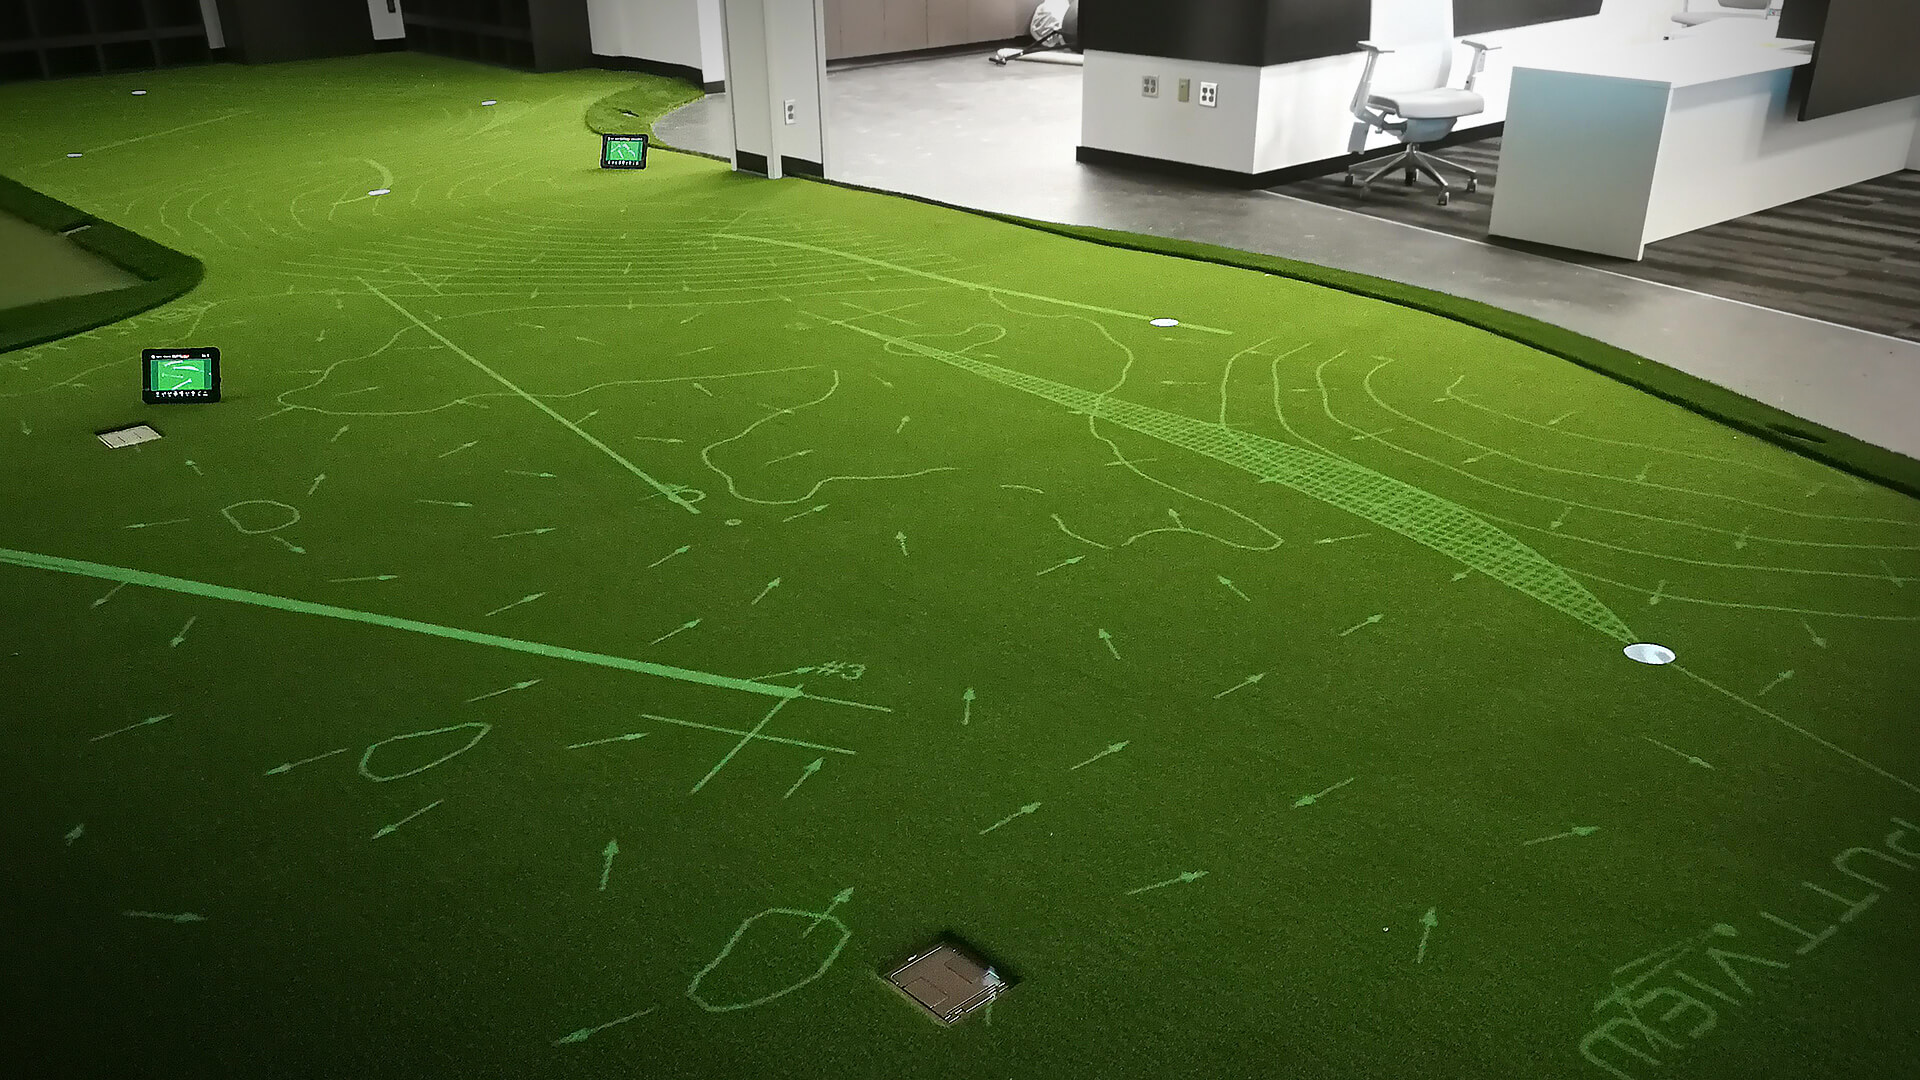 The perfect practice putting mat doesn't exist? Well, think again